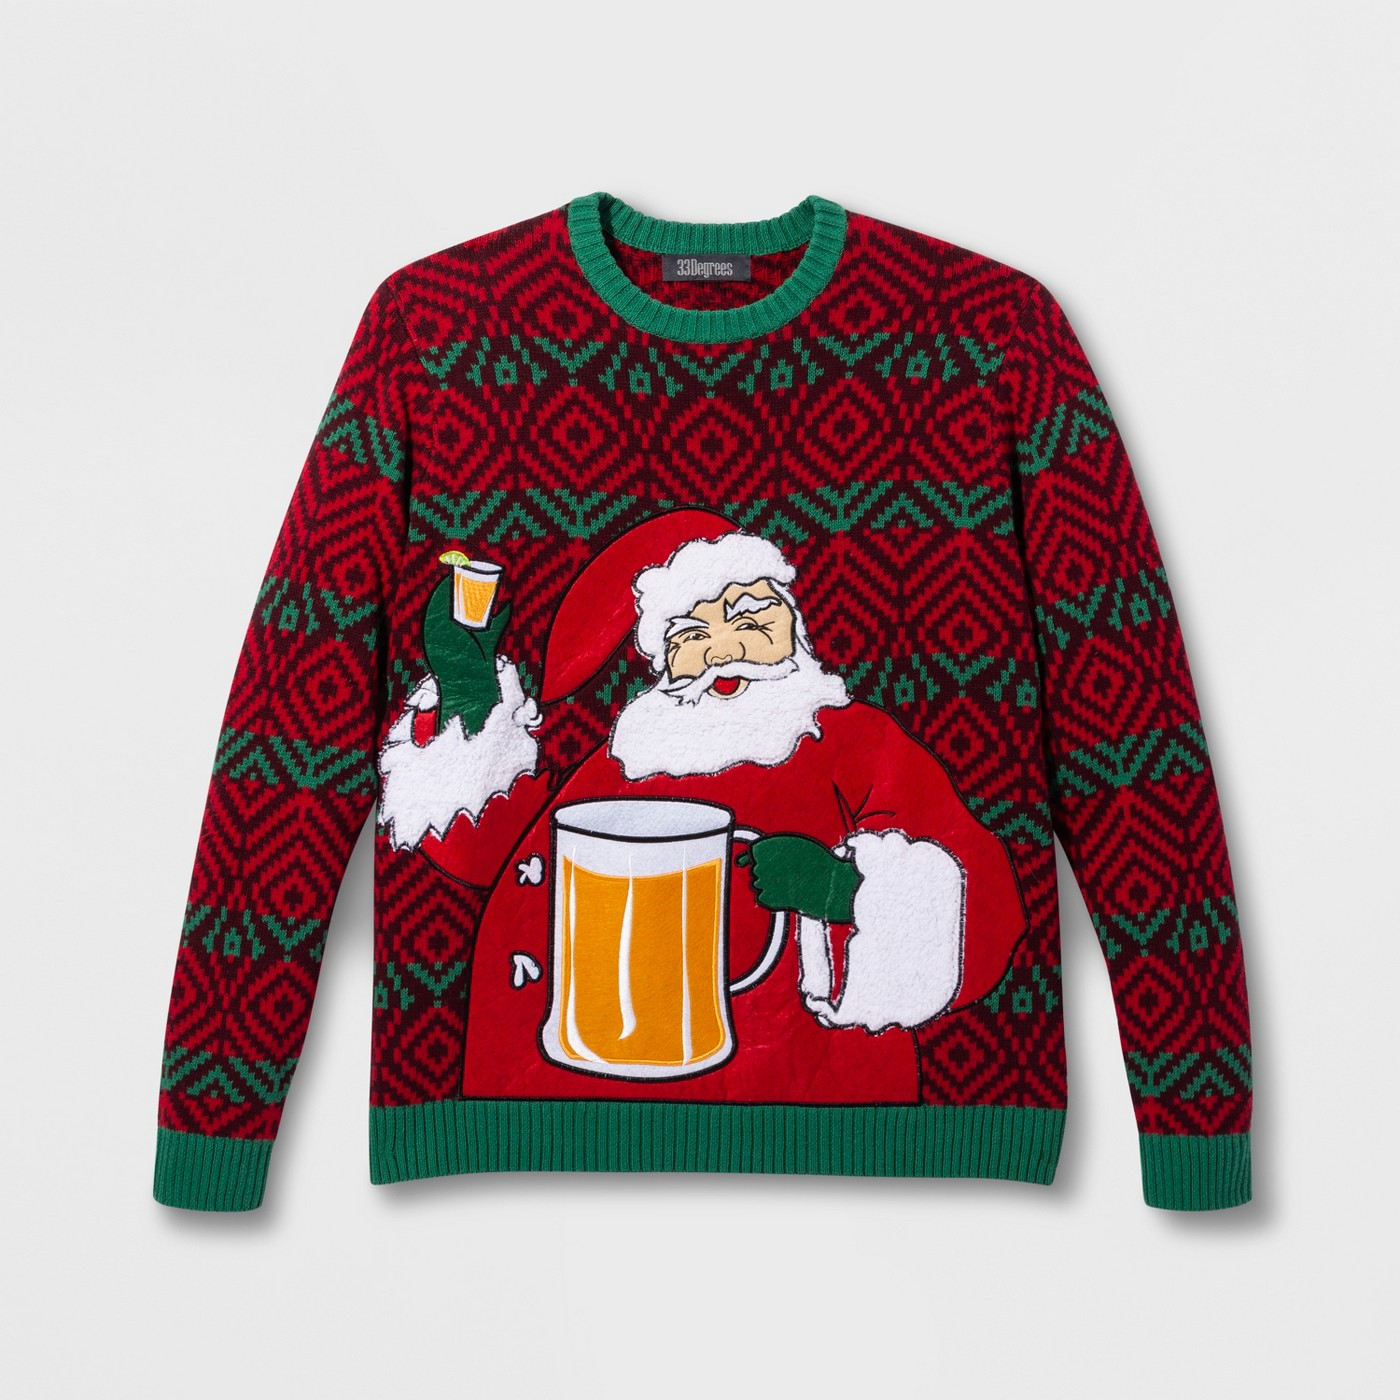 33 Degrees Men's Ugly Christmas Santa Beverage Holder Long Sleeve Pullover Sweater - Red - image 1 of 1